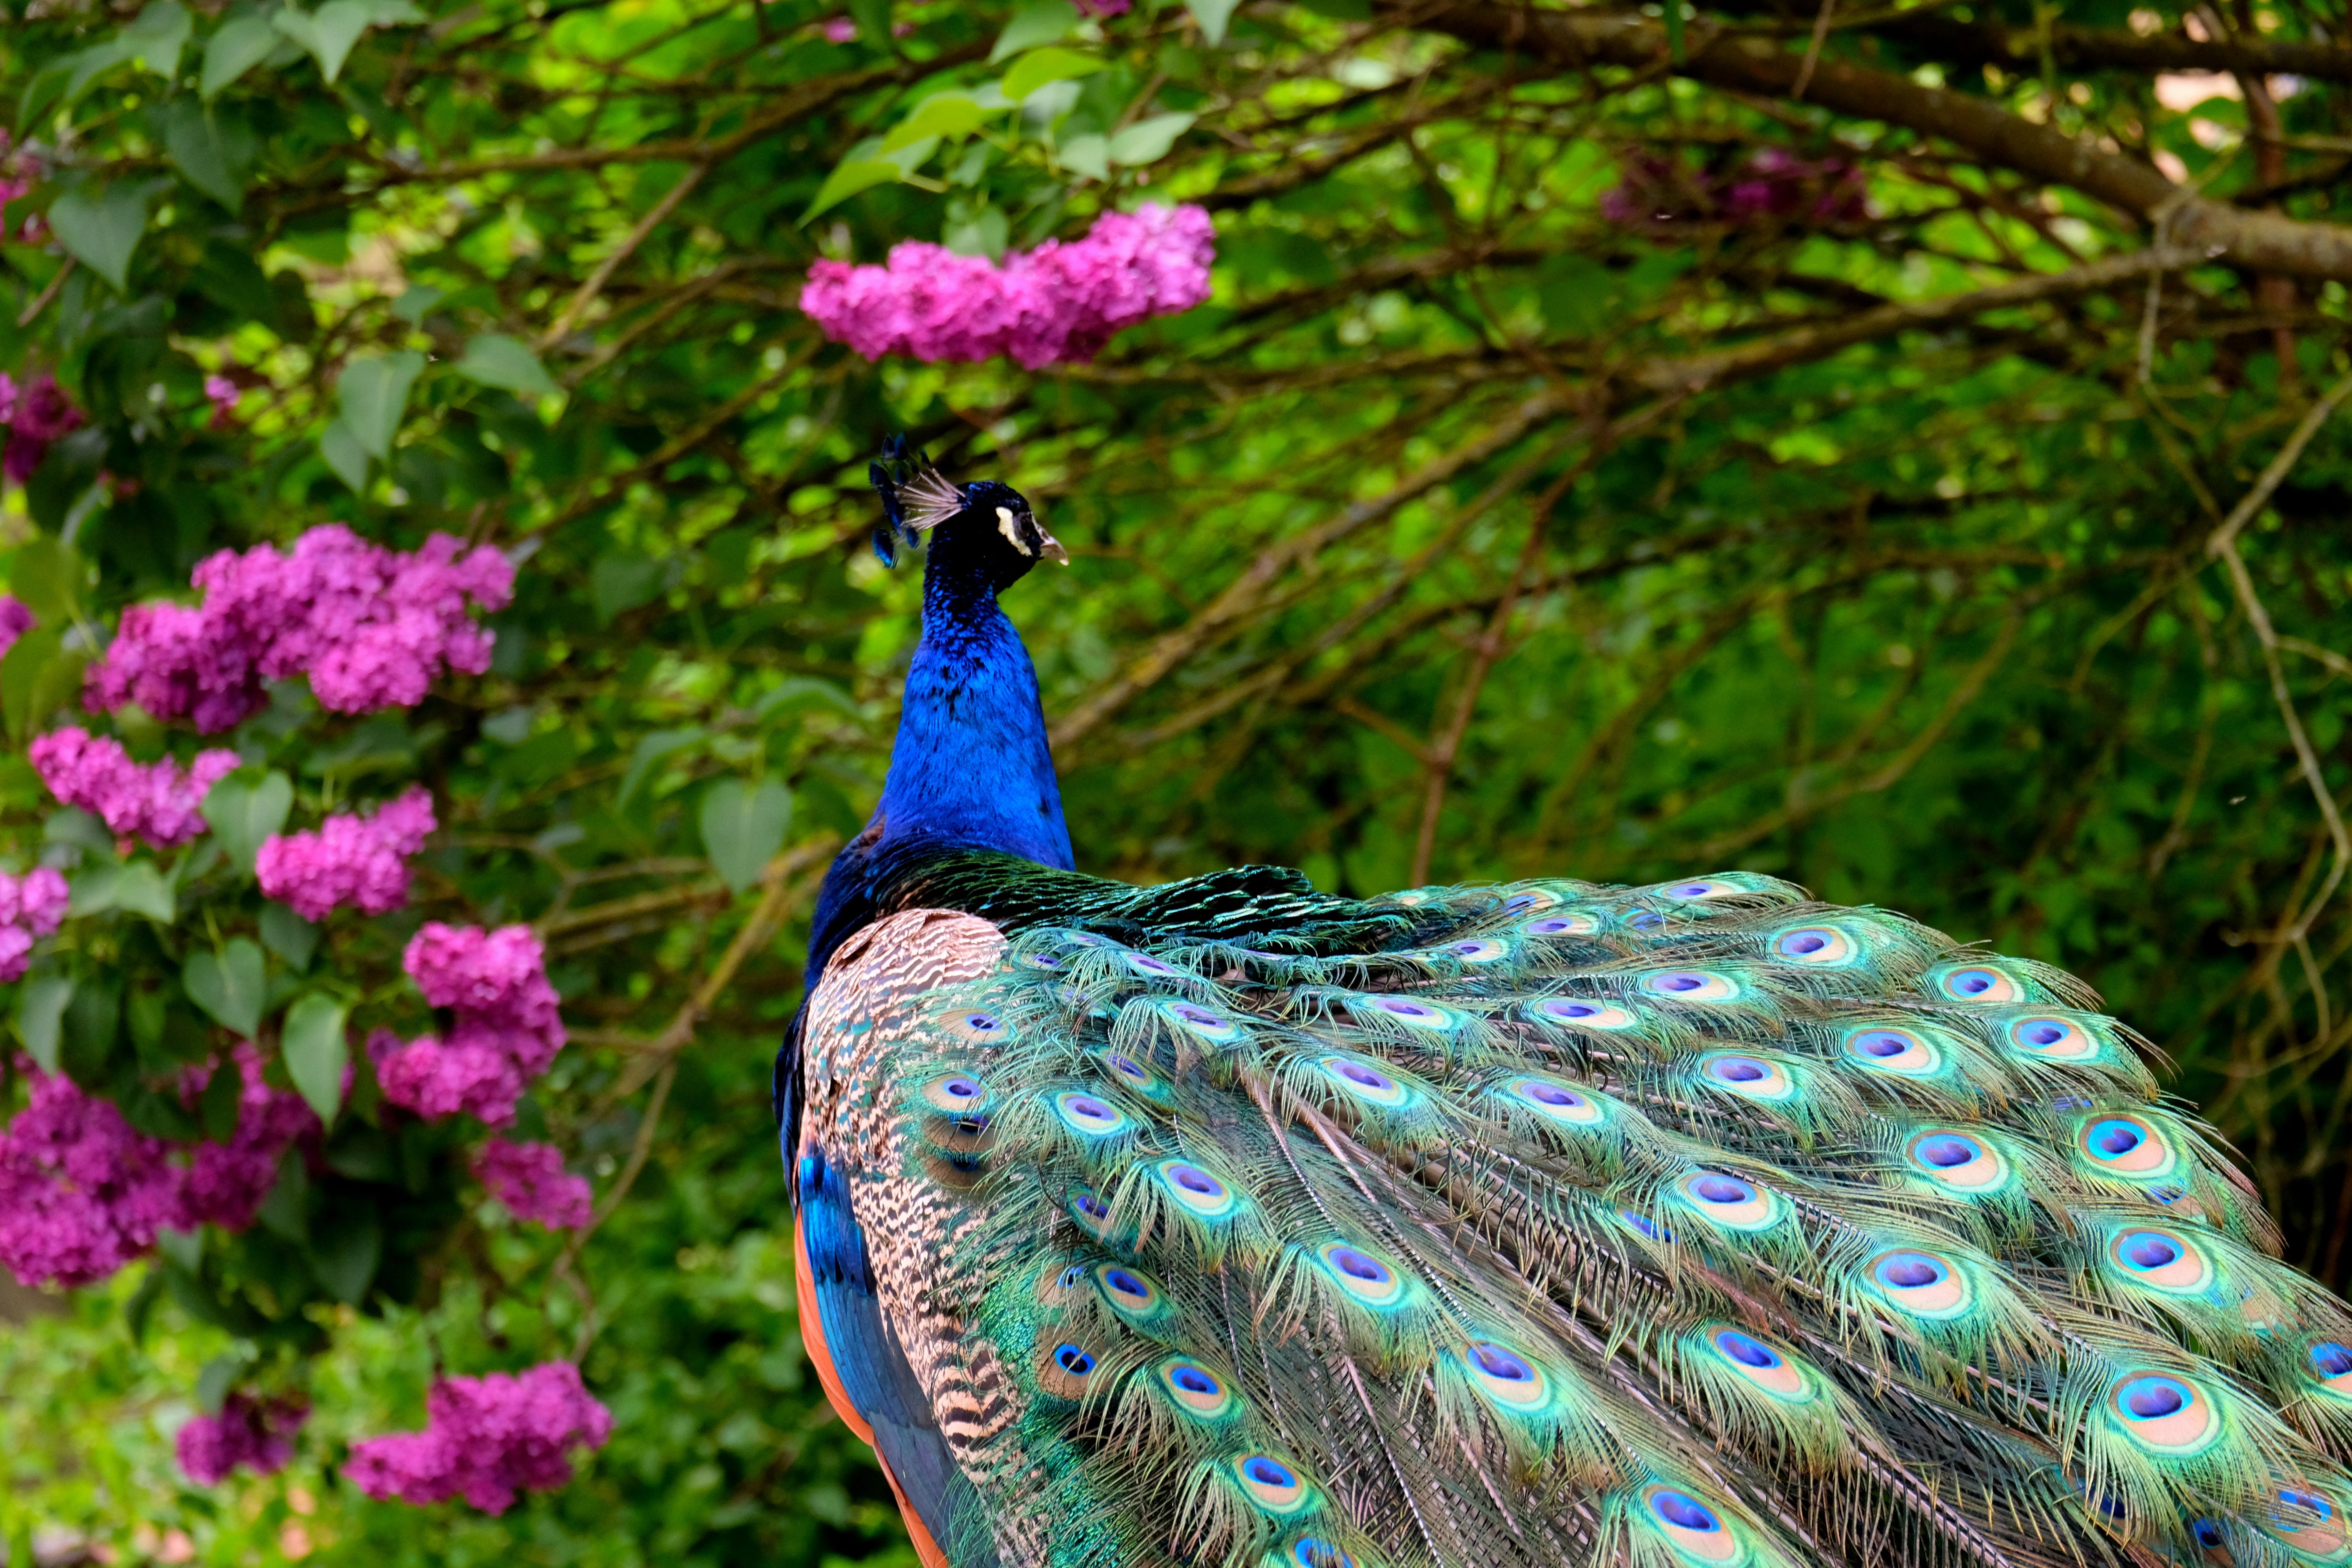 Multicolored Peacock